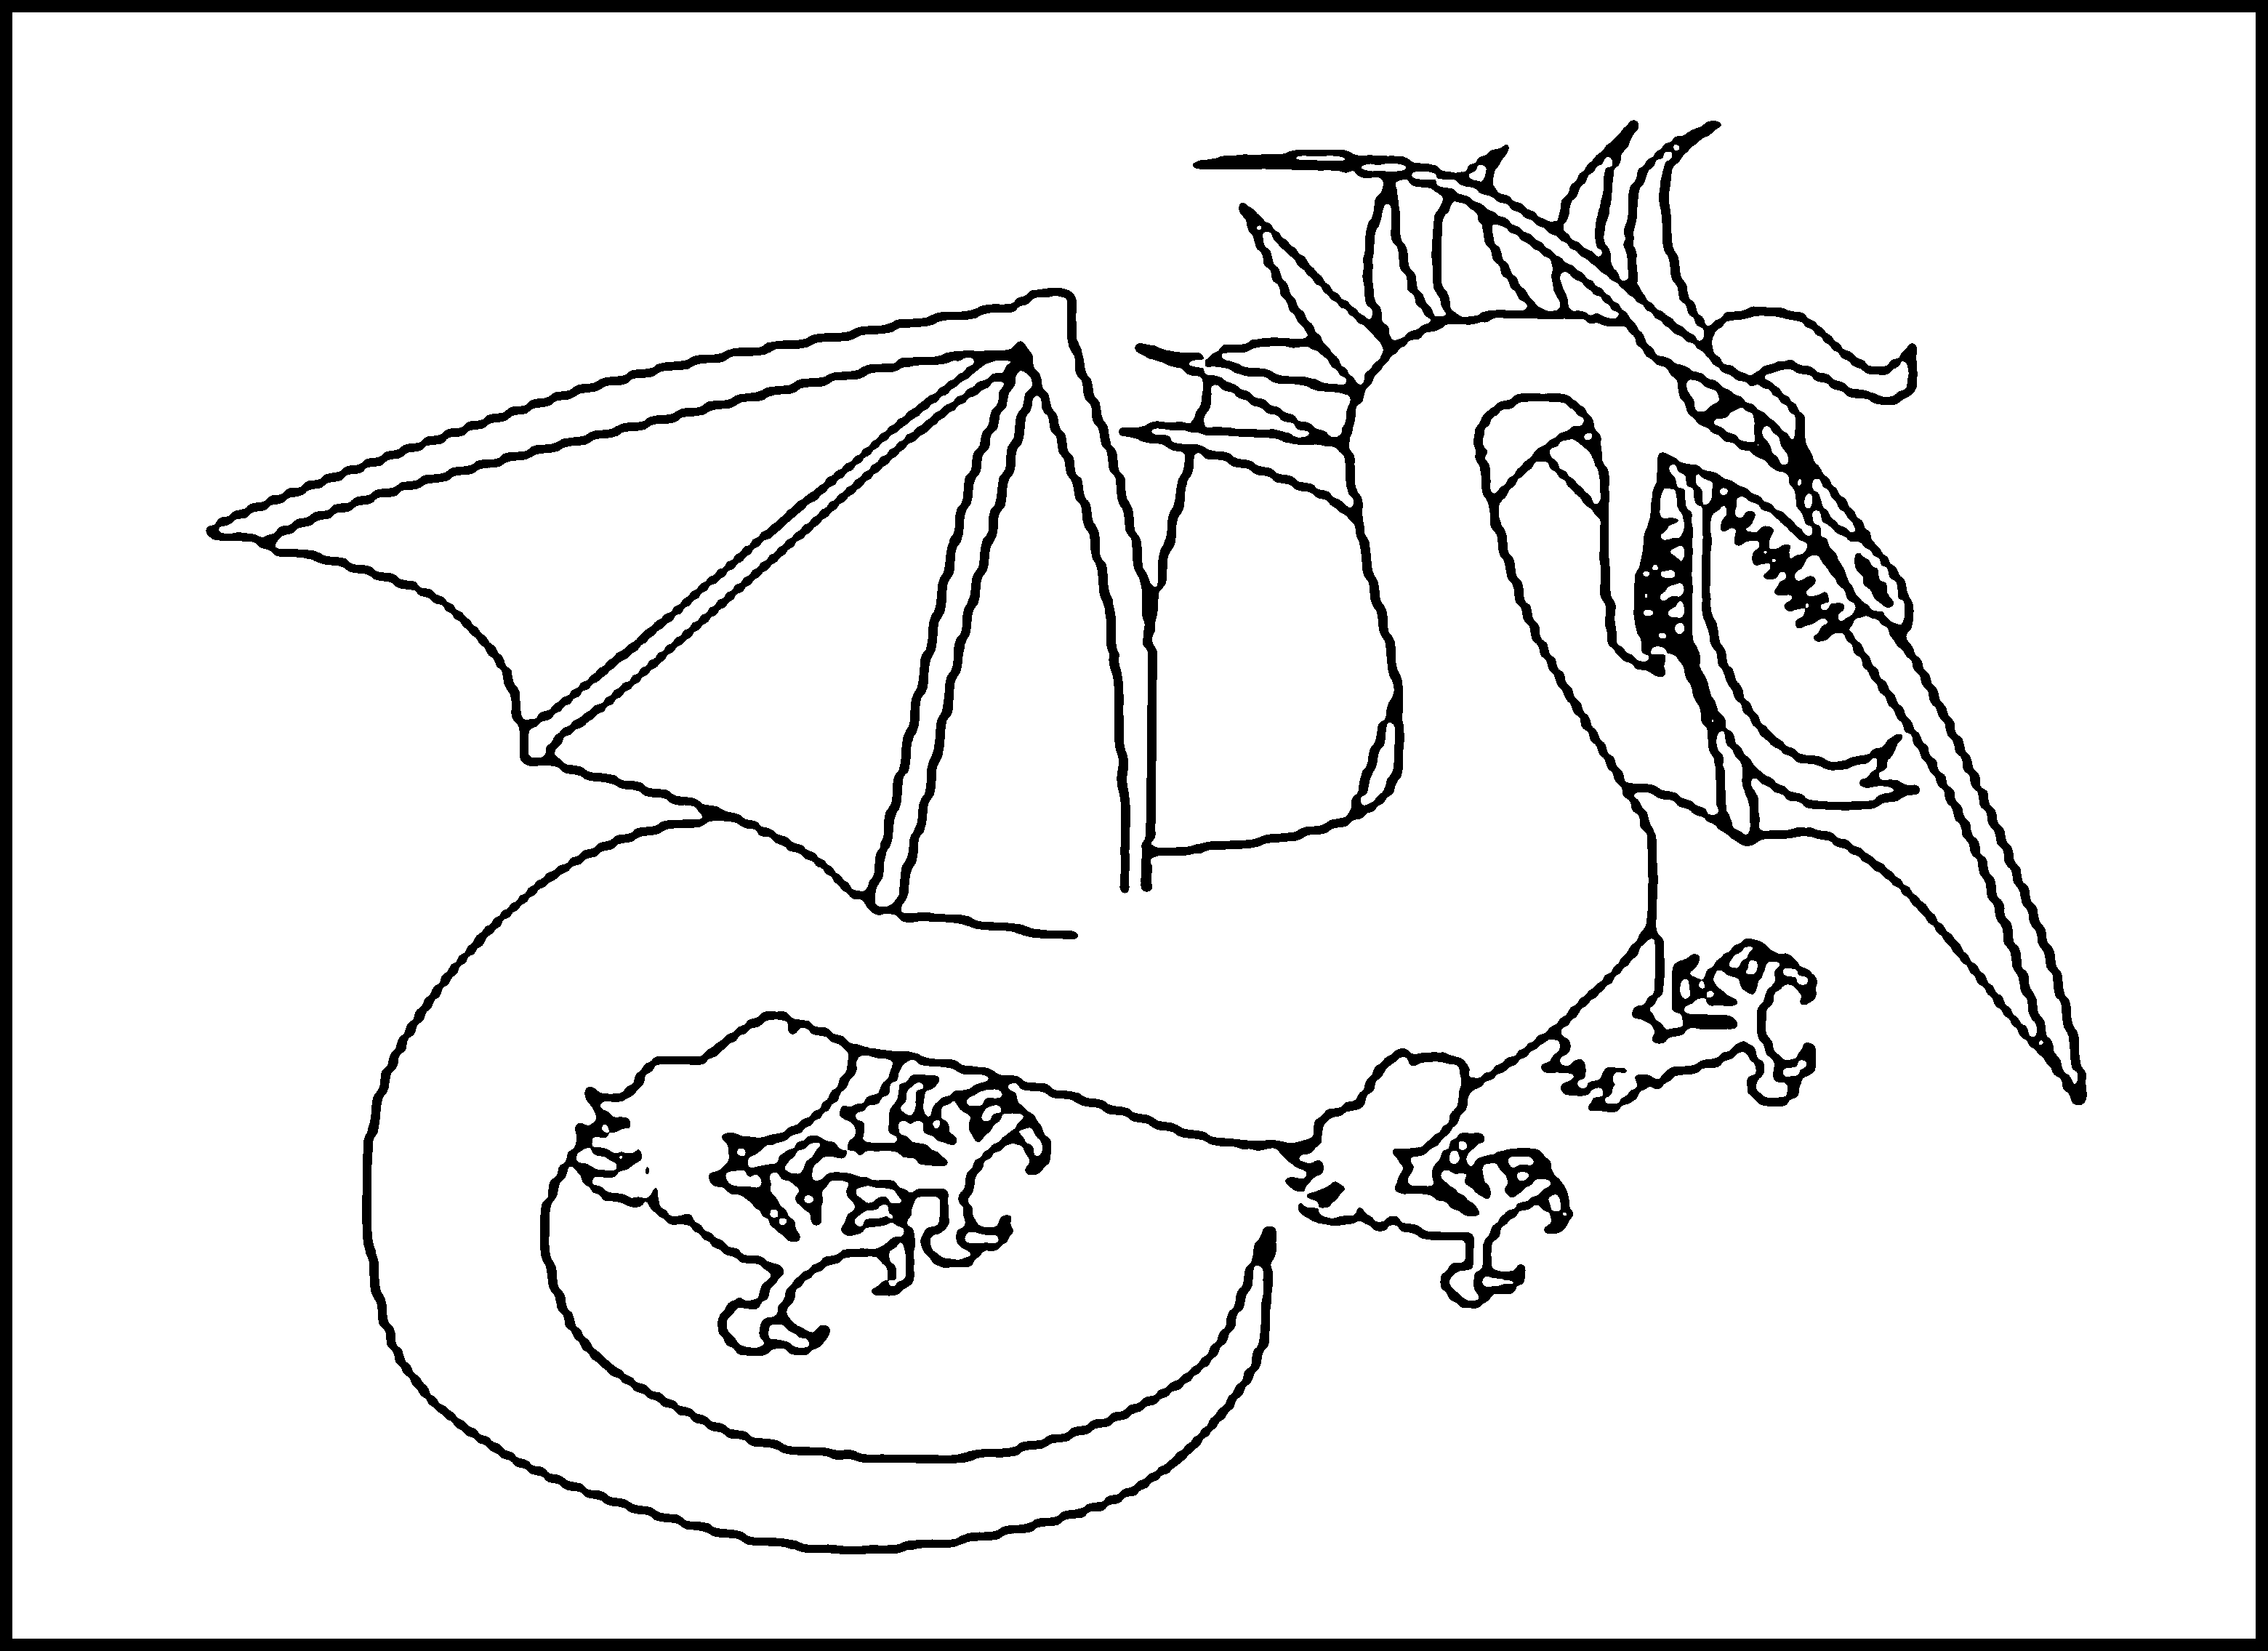 Colouring Pages To Print For Free : Free printable dragon coloring pages for kids